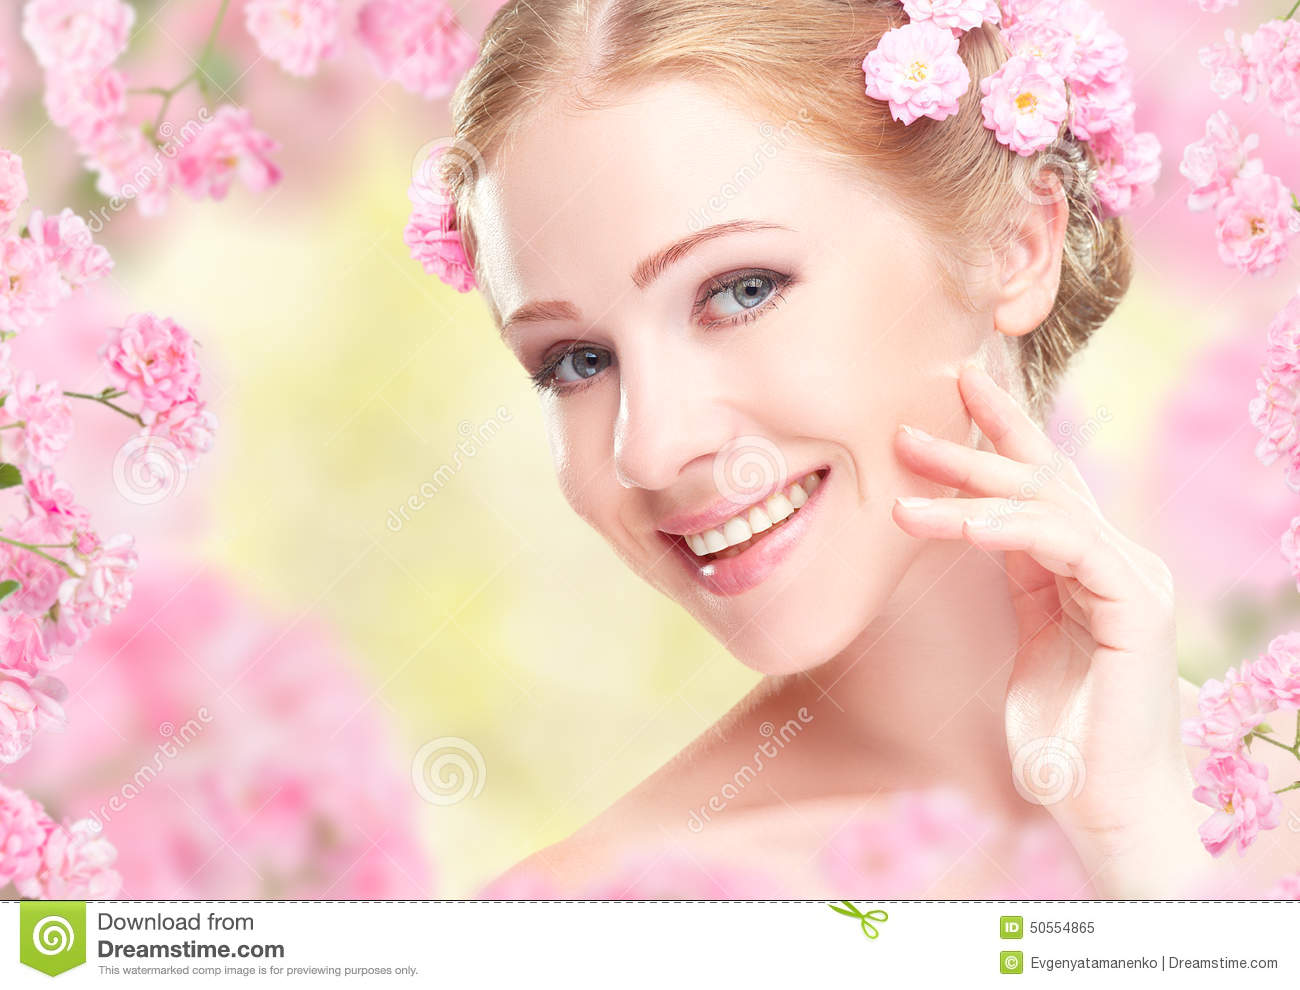 Beauty face of young happy beautiful woman with pink flowers in beautiful beauty face flowers hair happy pink woman dhlflorist Gallery